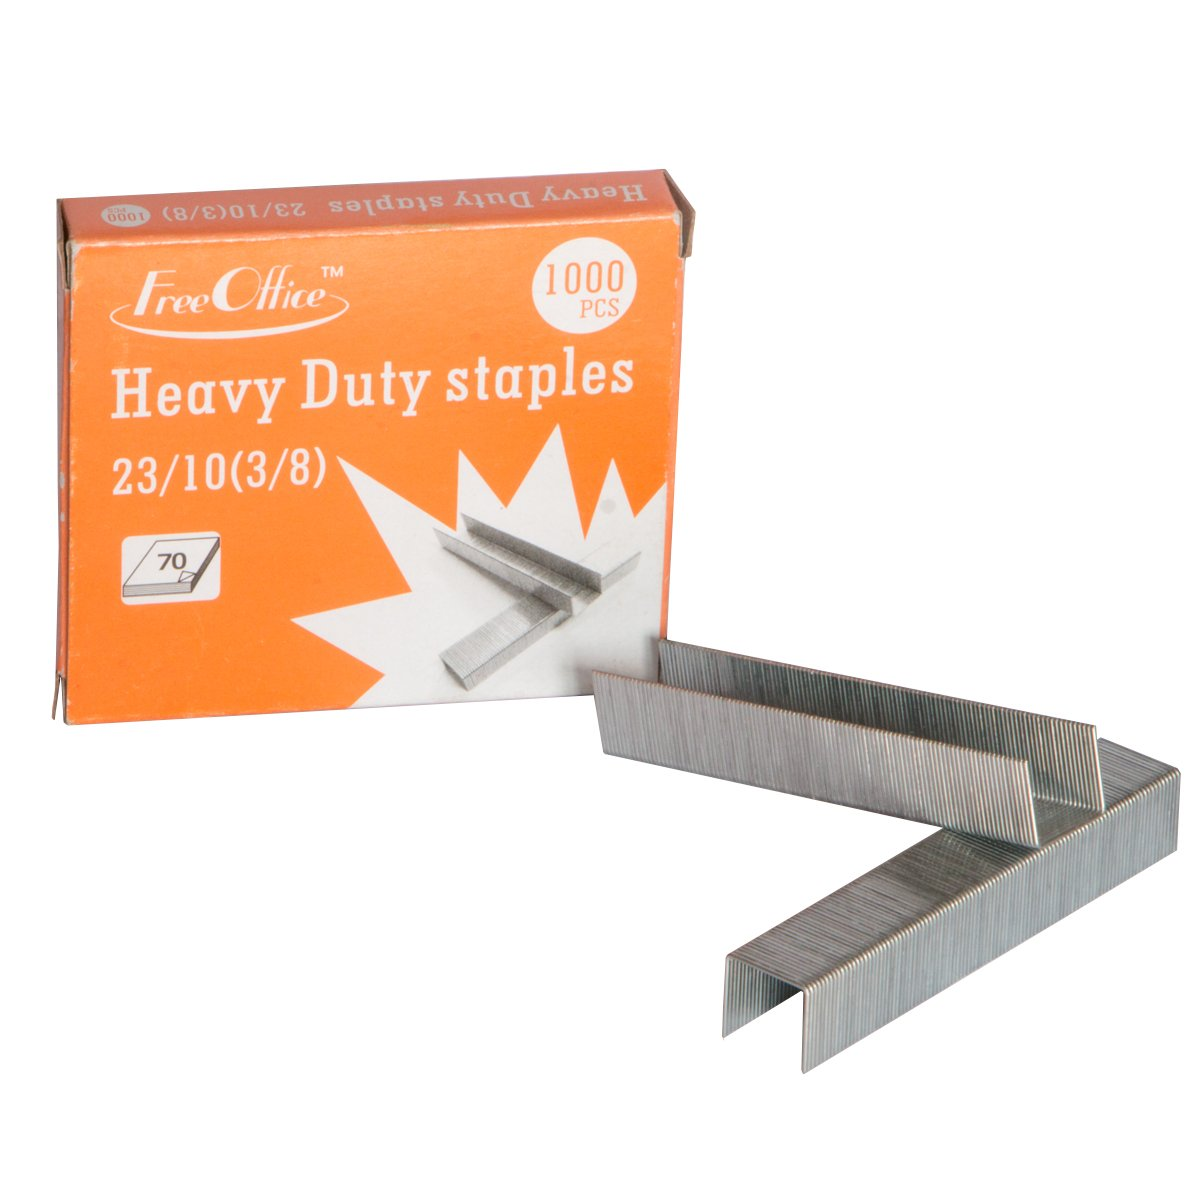 Heavy Duty Standard Staples 23/10 3/8' Length Free Office 1000pcs/box (10) by Free Office (Image #3)